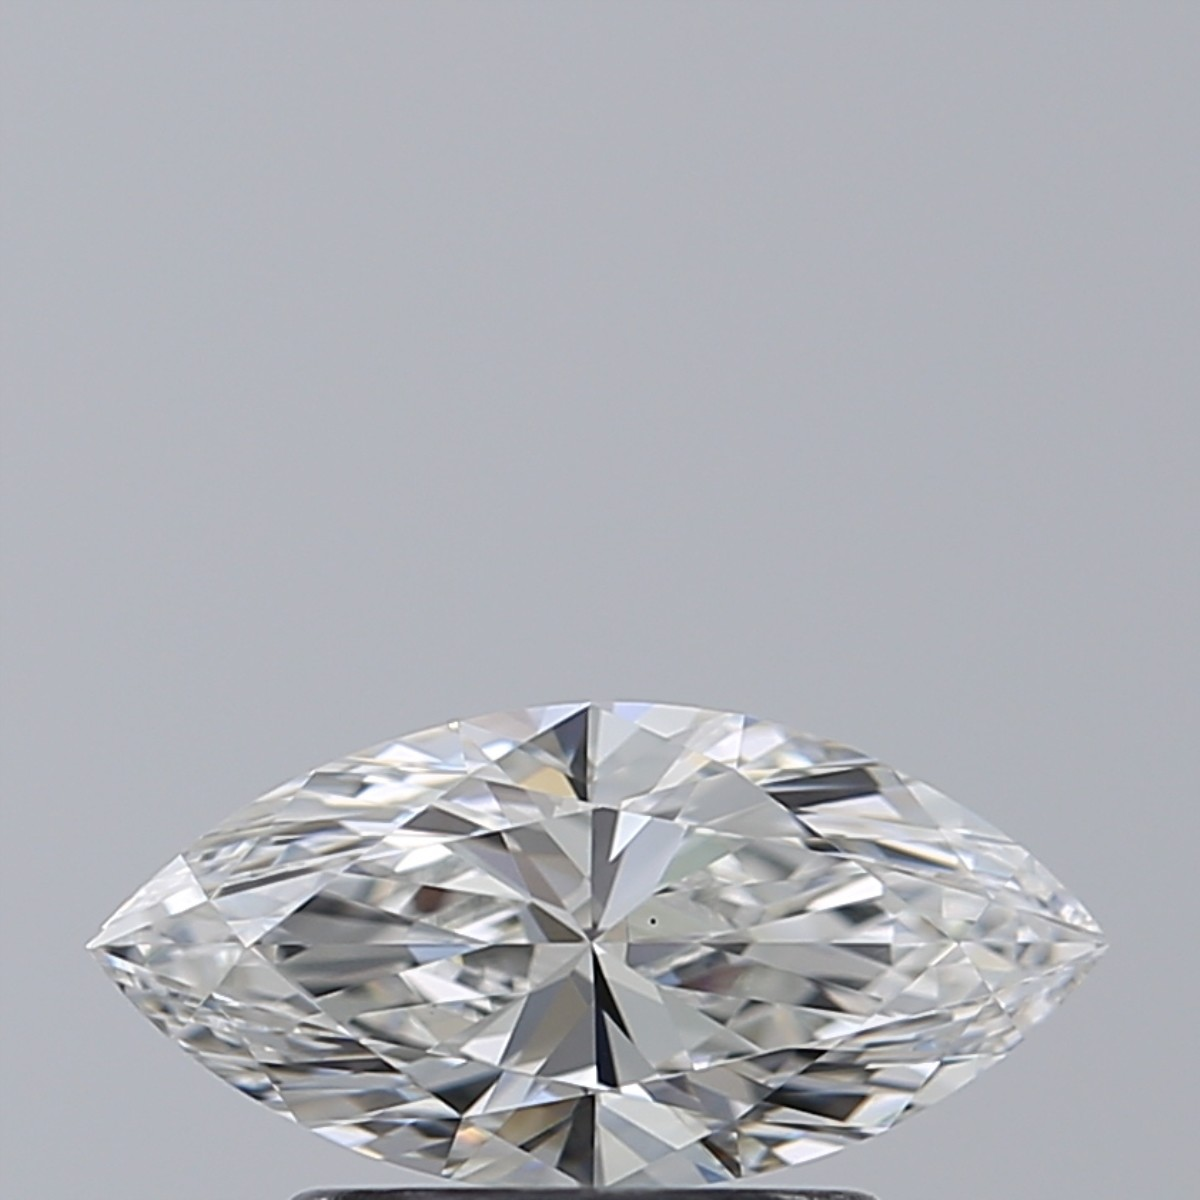 0.81 Carat Marquise Diamond (G/VS1)